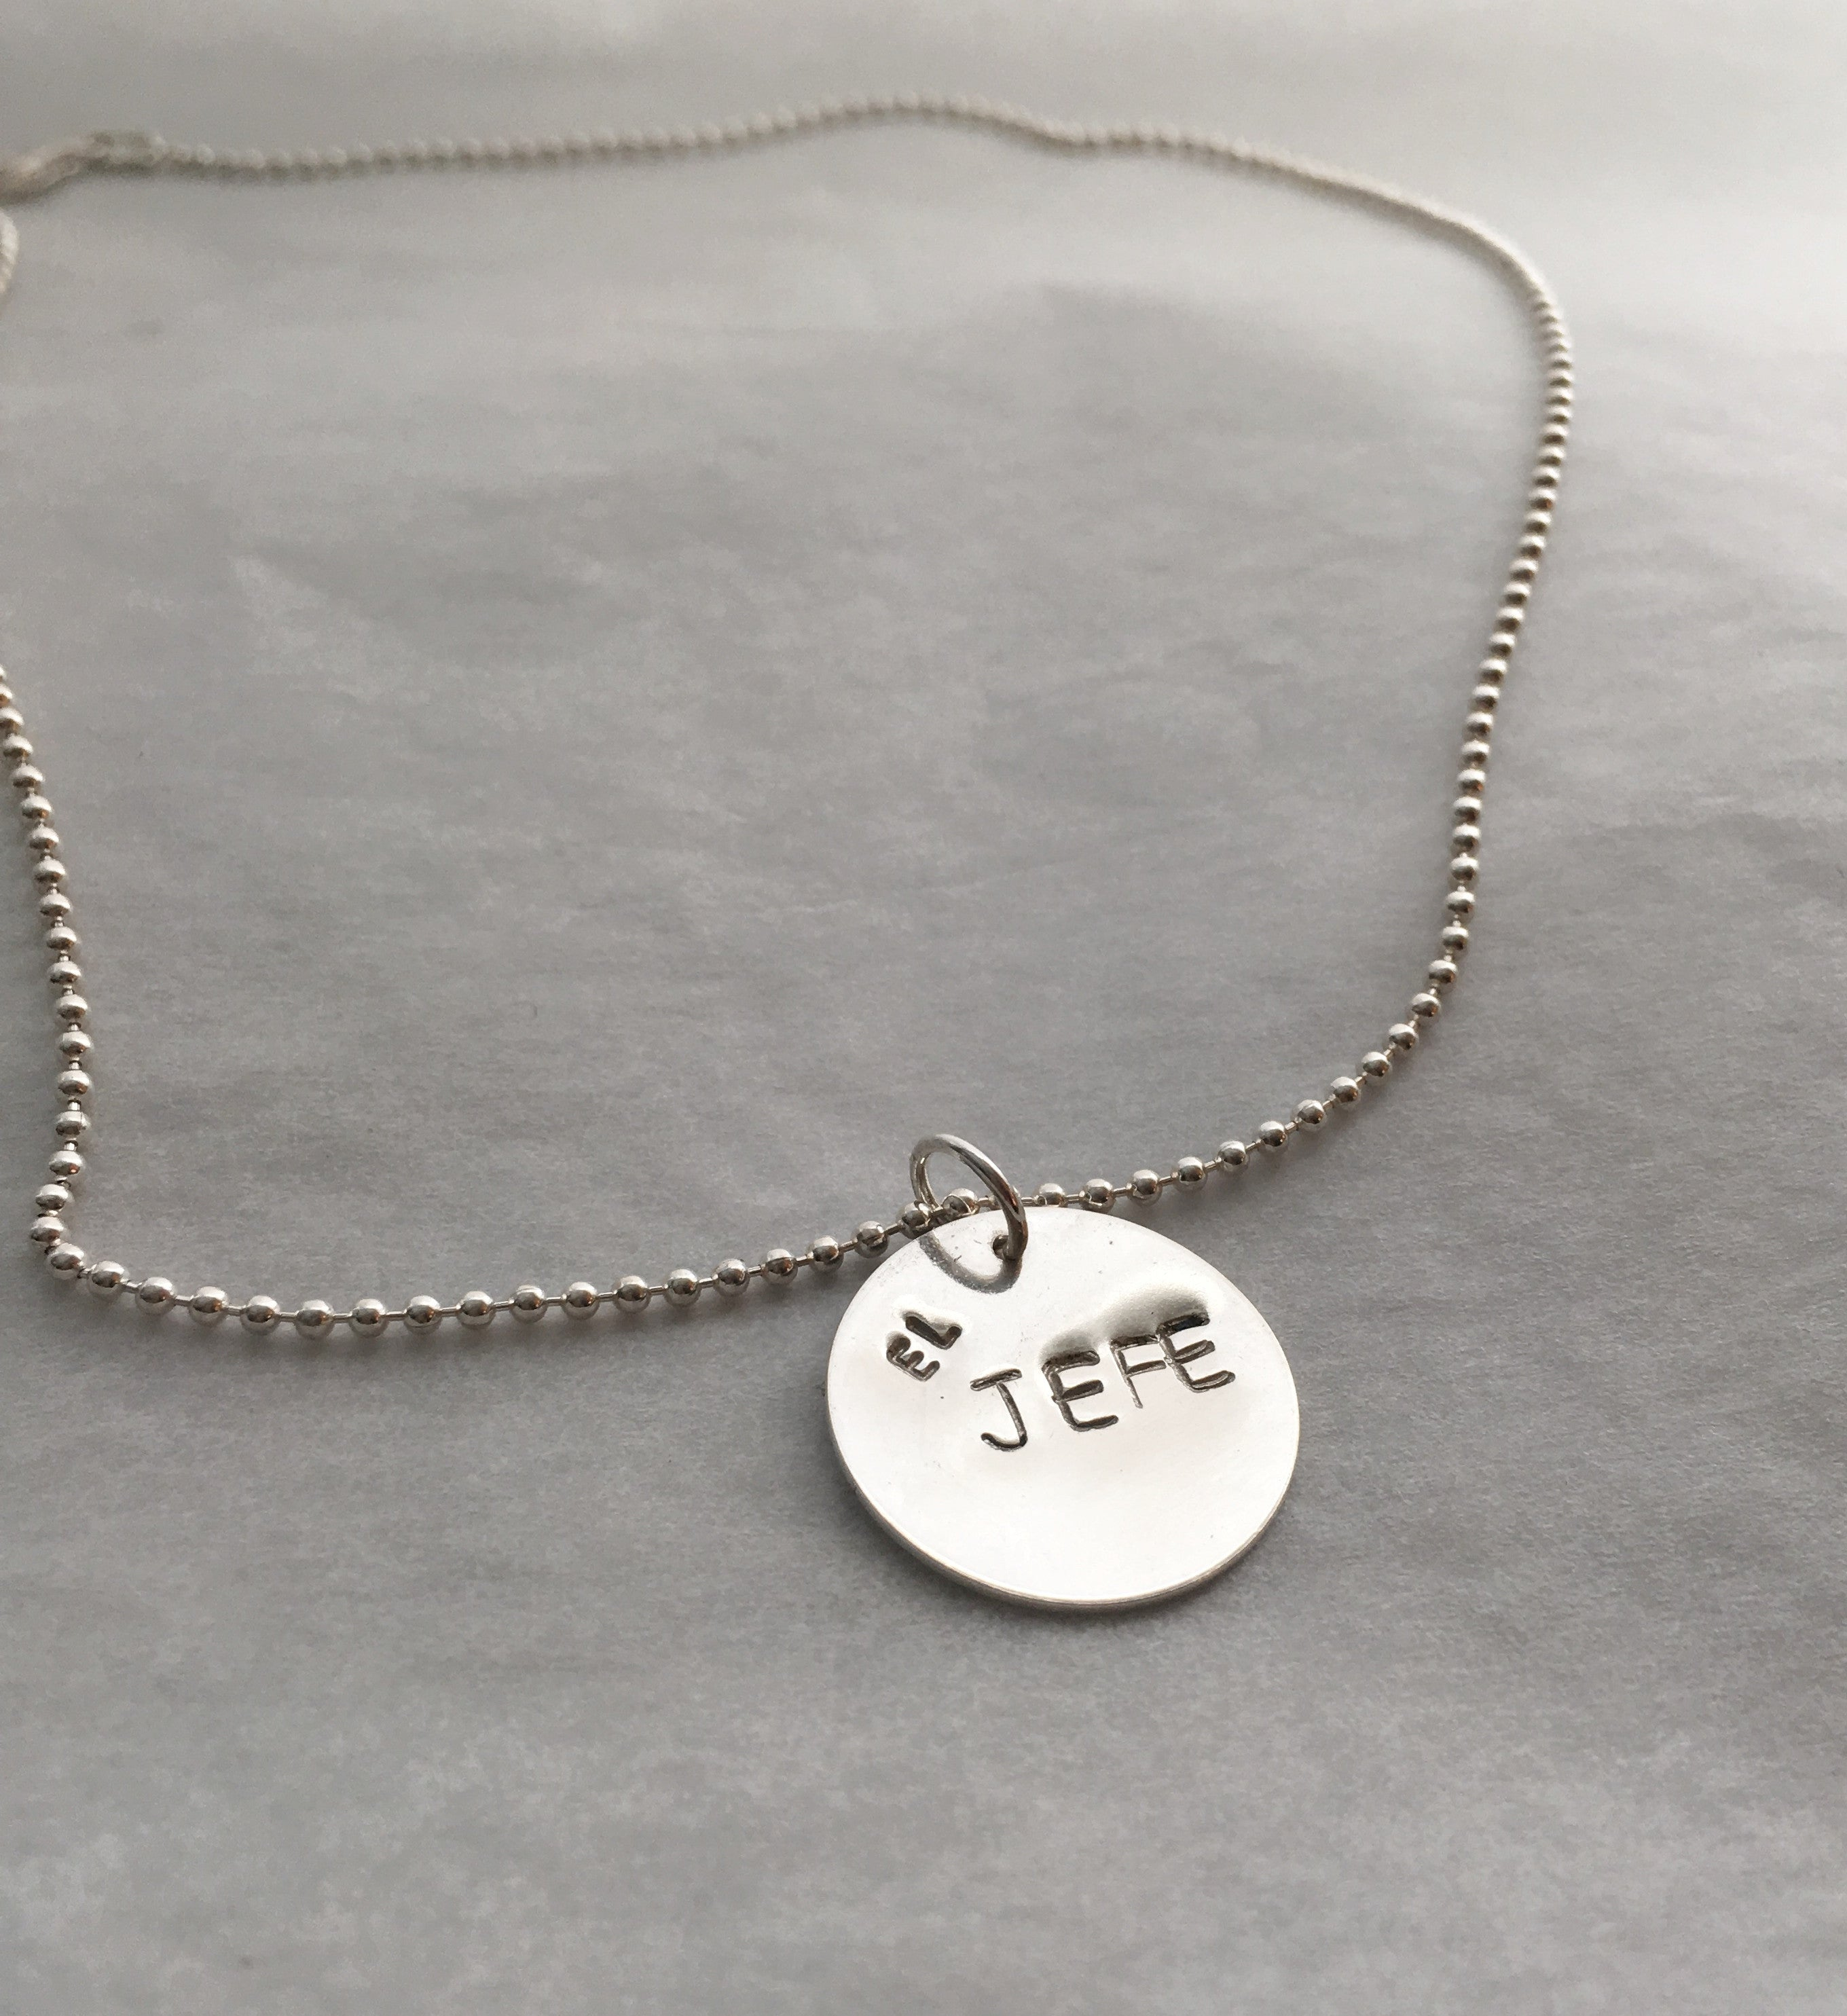 Handstamped El Jefe Pendant Necklace with Bead Chain